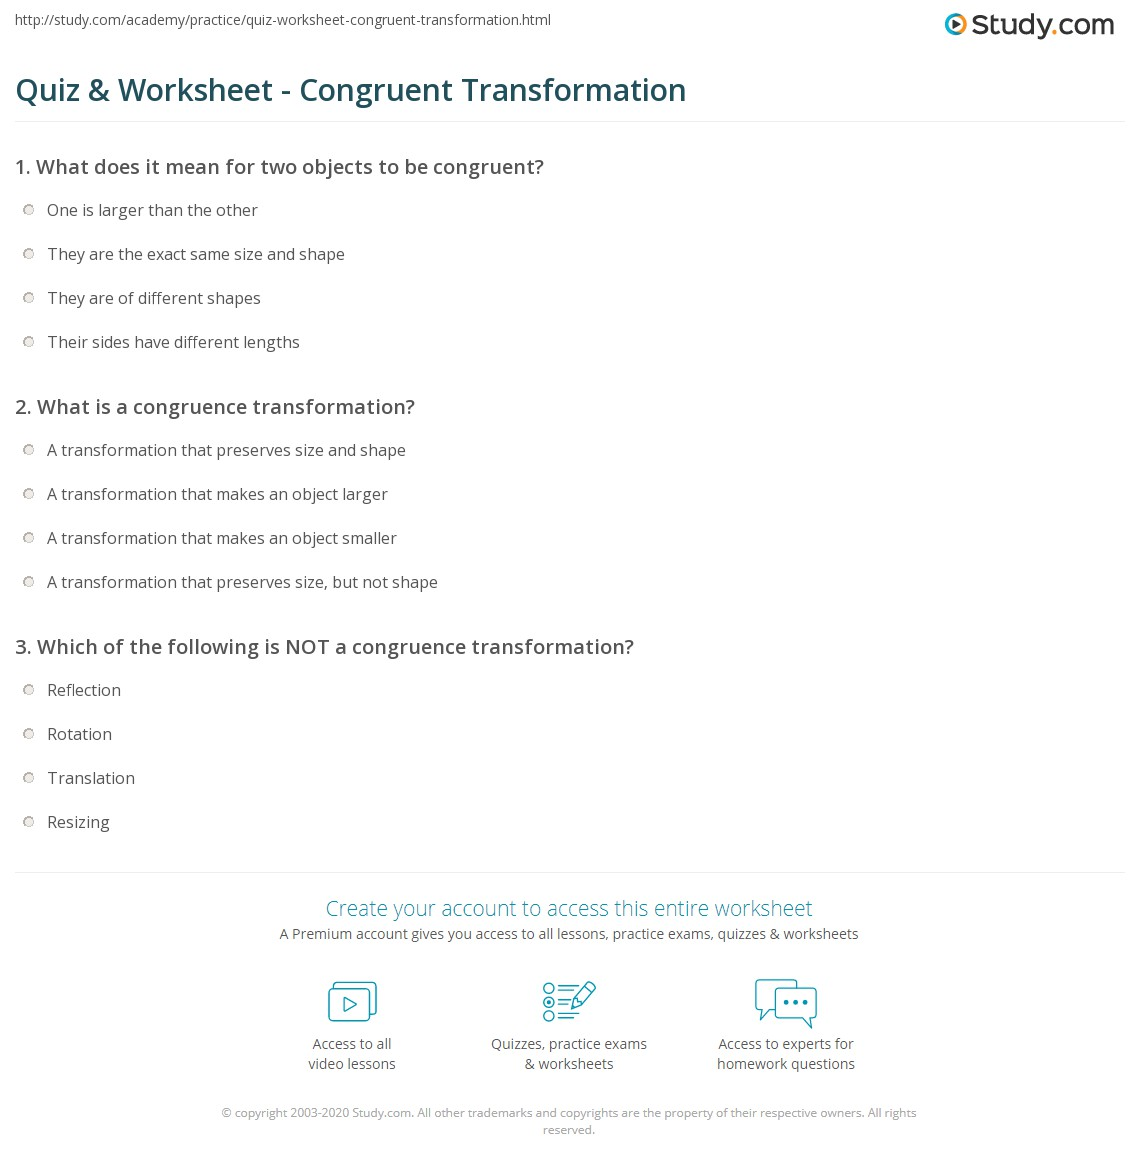 Worksheets Transformations And Congruence Worksheet quiz worksheet congruent transformation study com print congruence definition theorems worksheet